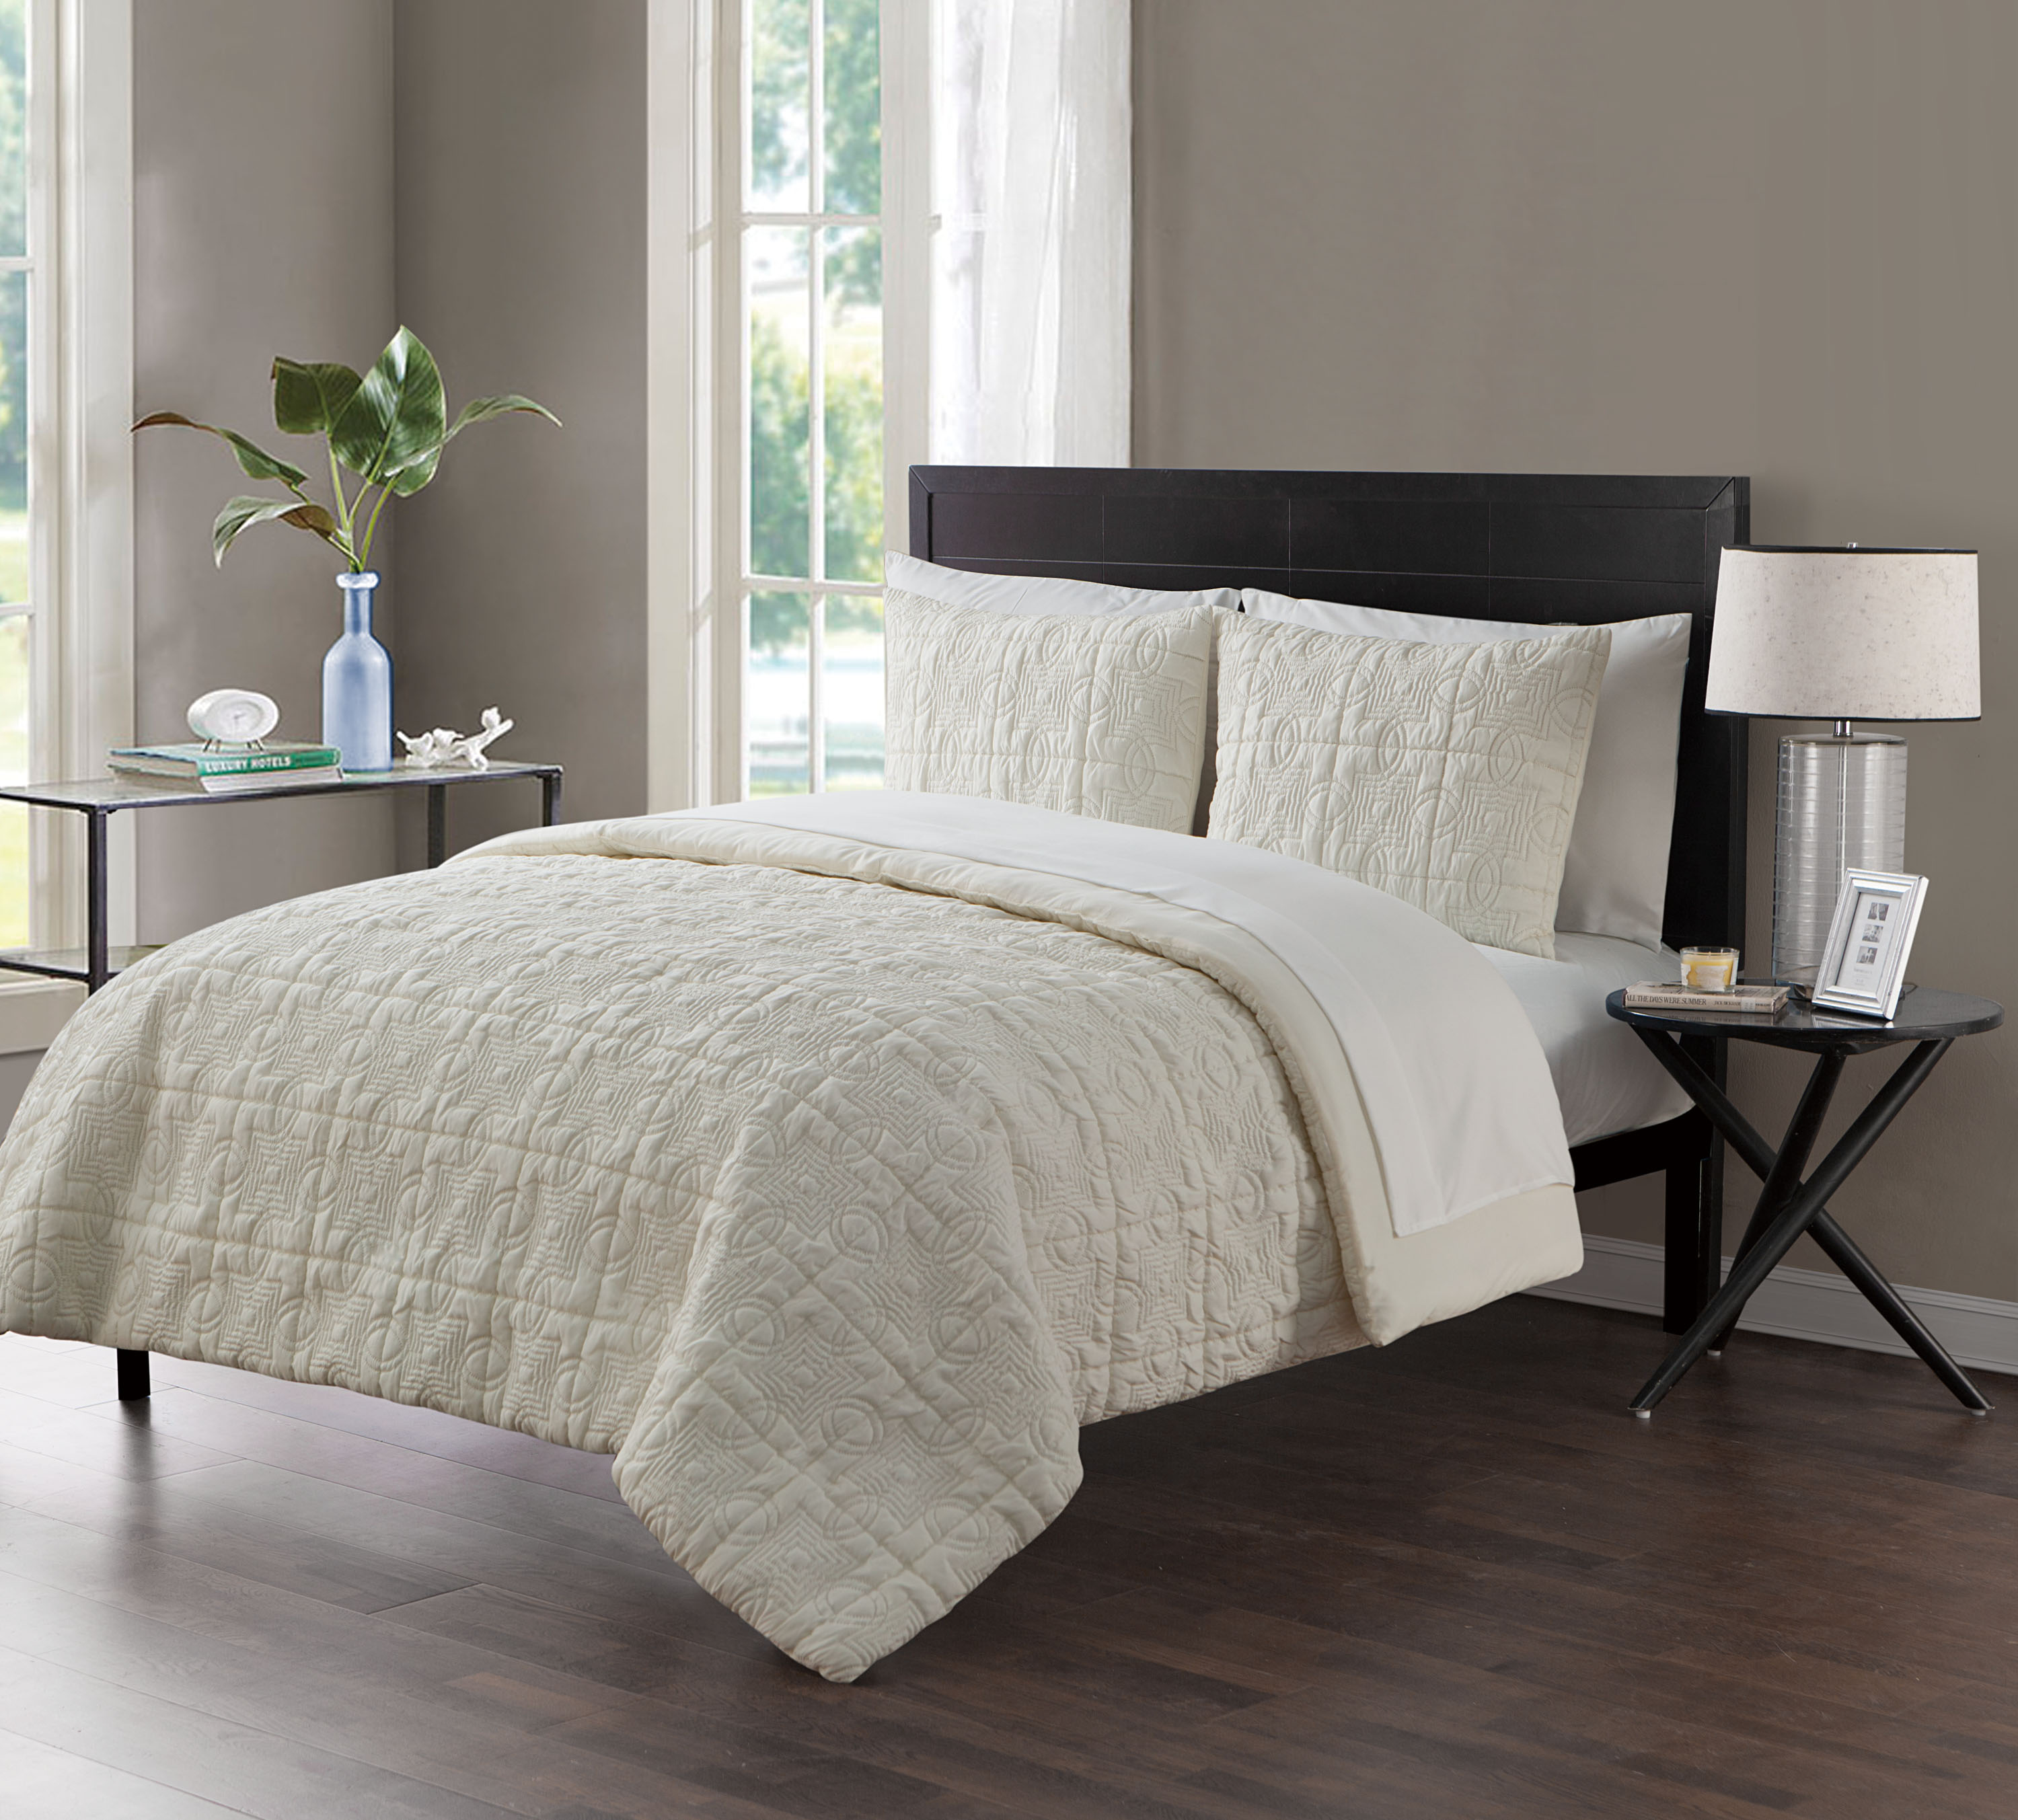 VCNY Home Iron Gate Geometric Embossed Bed in a Bag, Sheet Set Included